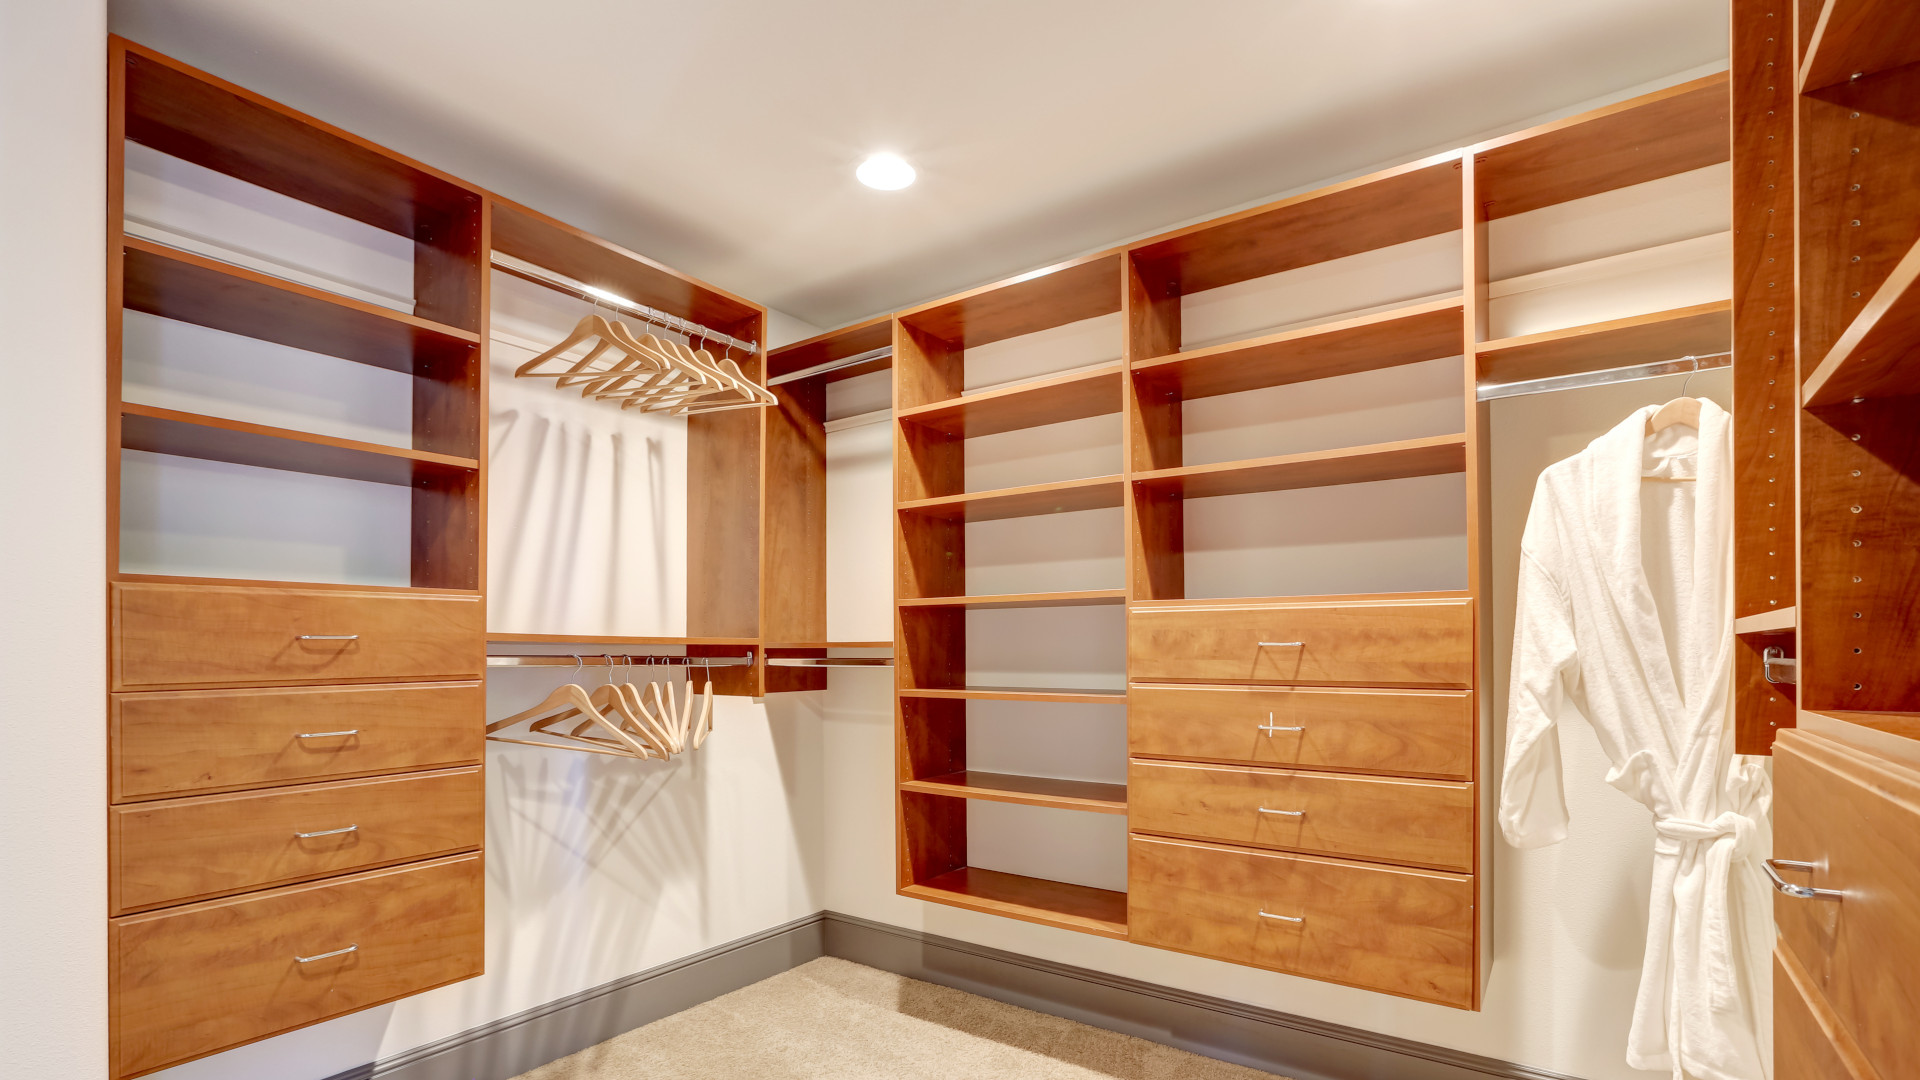 Marvelous Walk In Closets Wall Closets Accessories For Closet Home Interior And Landscaping Dextoversignezvosmurscom